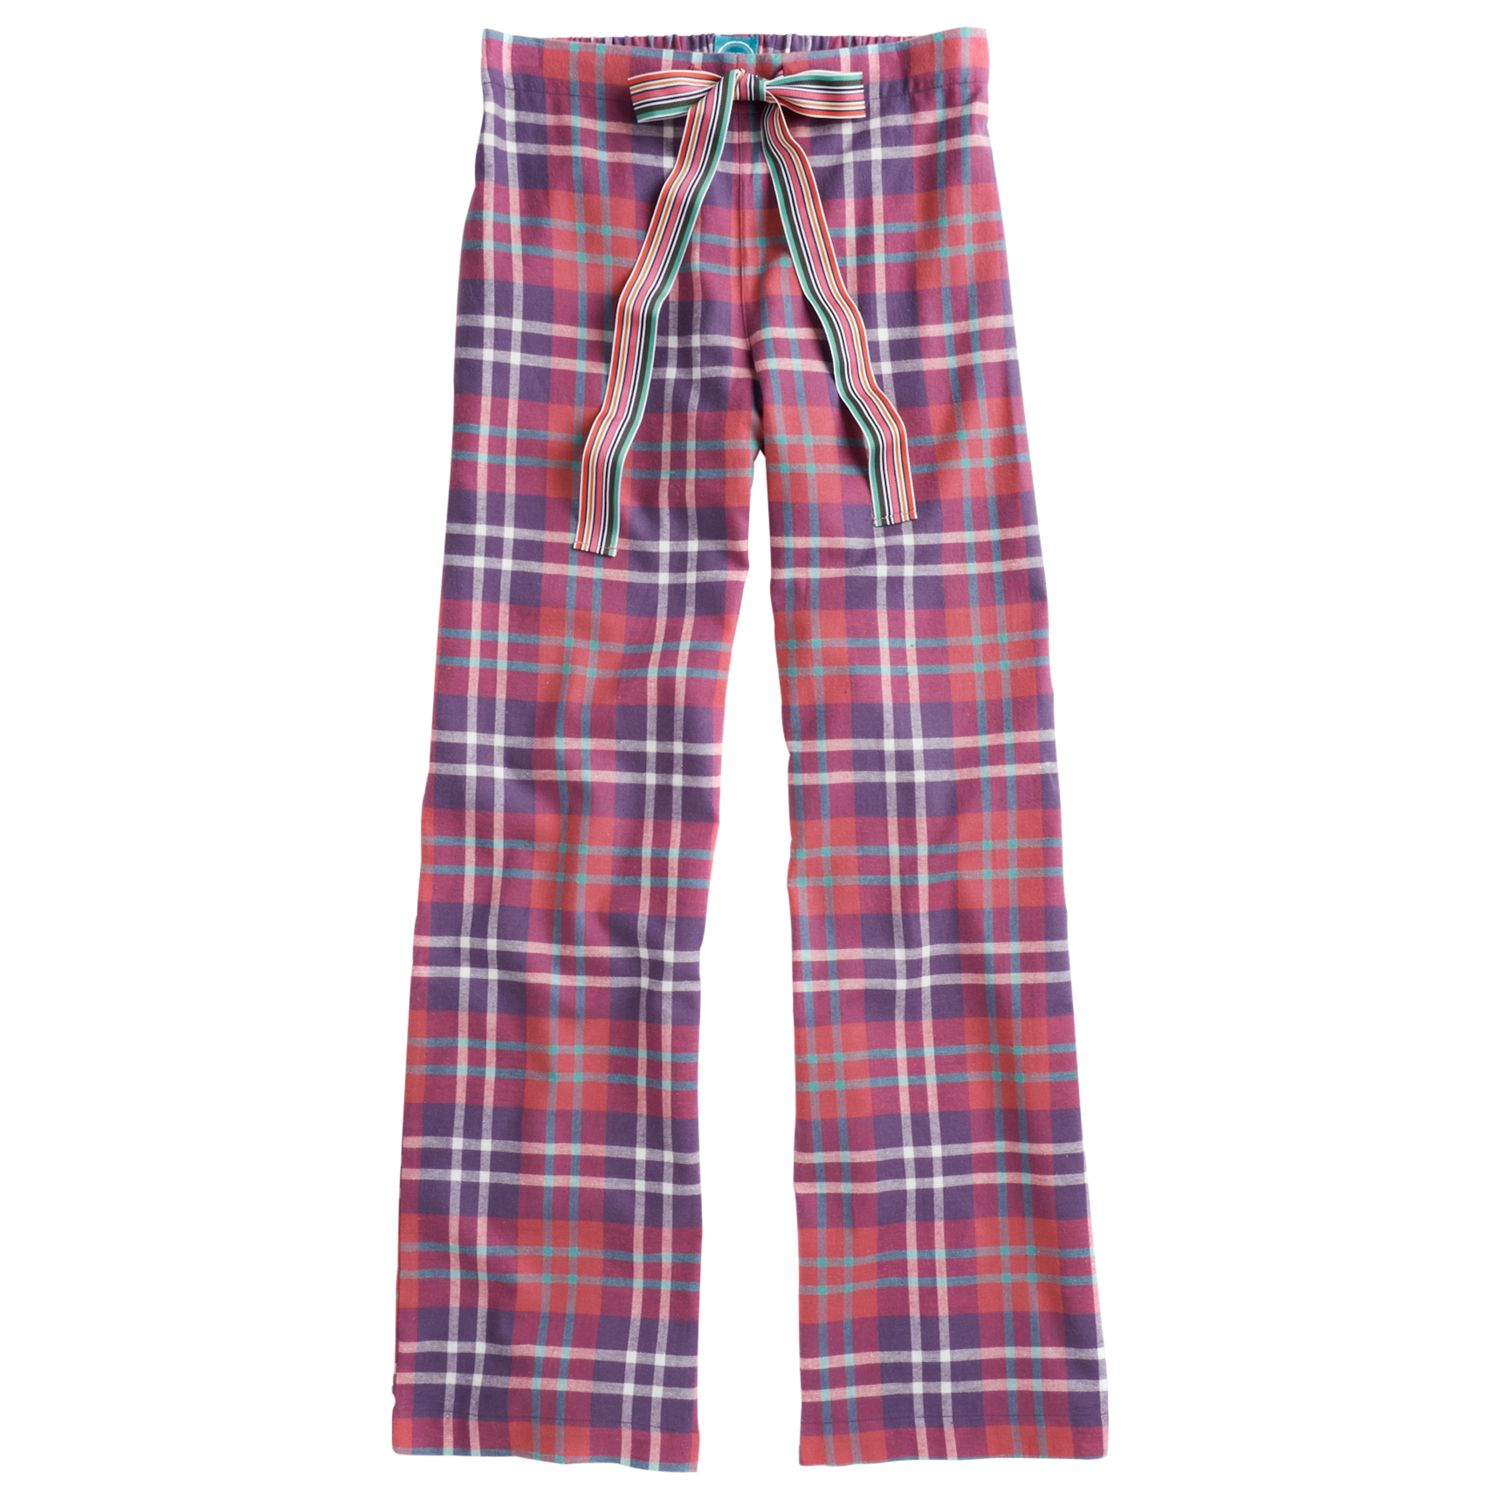 Joules Fleur Check Print Pyjama Trousers, Purple